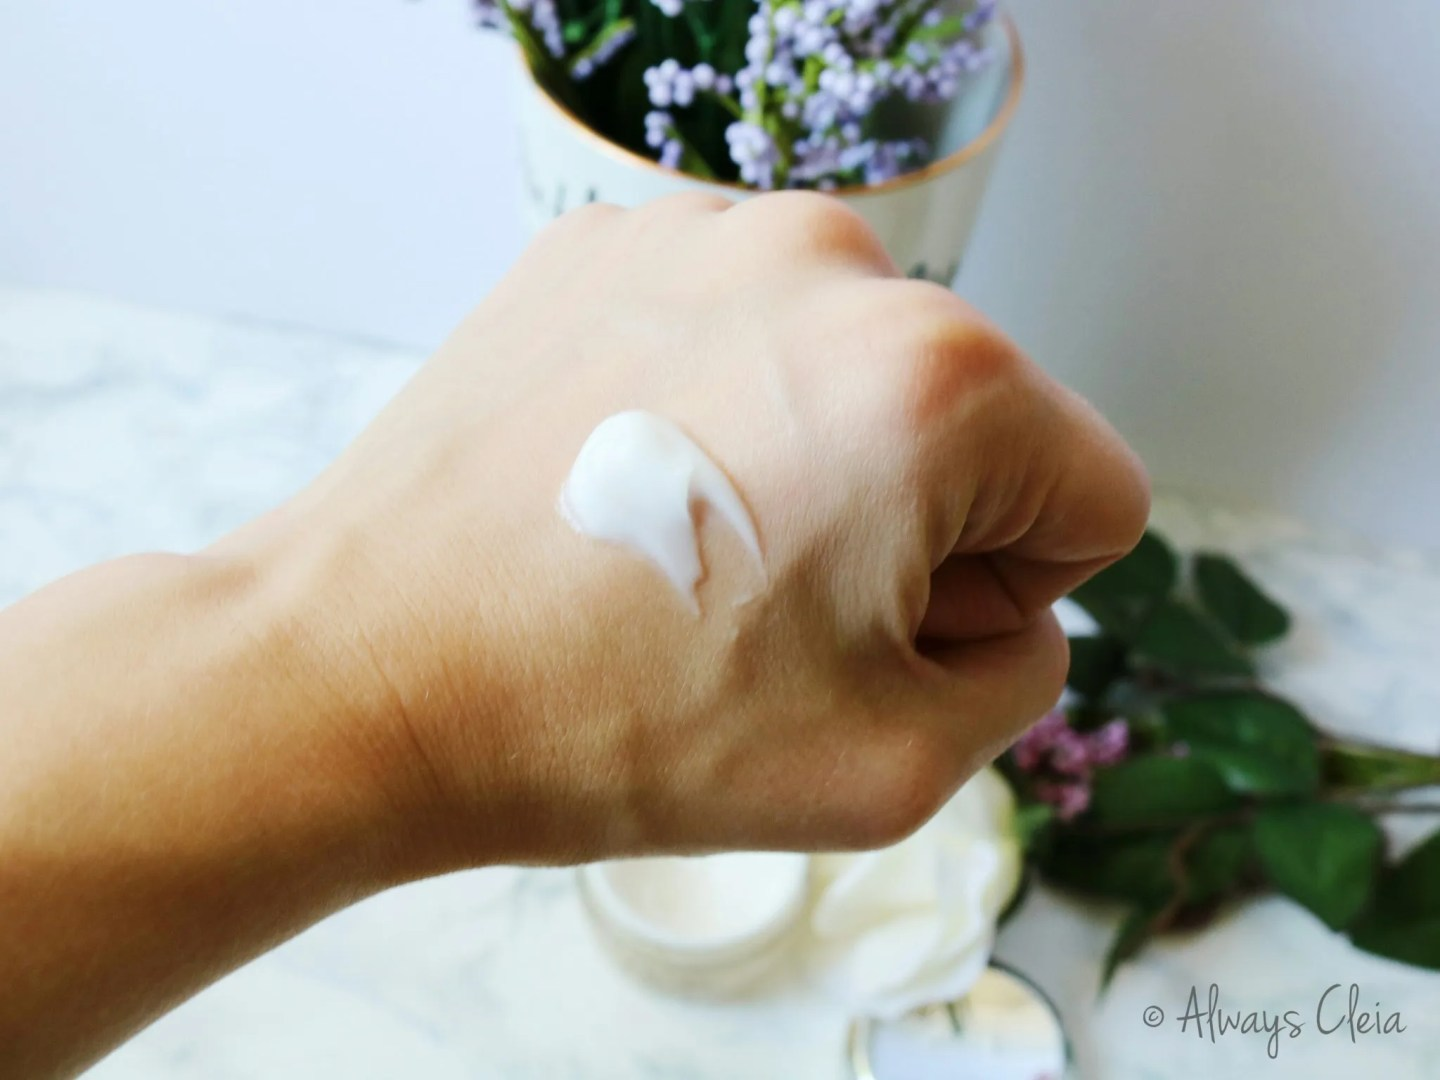 Olay Total Effects Whip Moisturizer - Formula